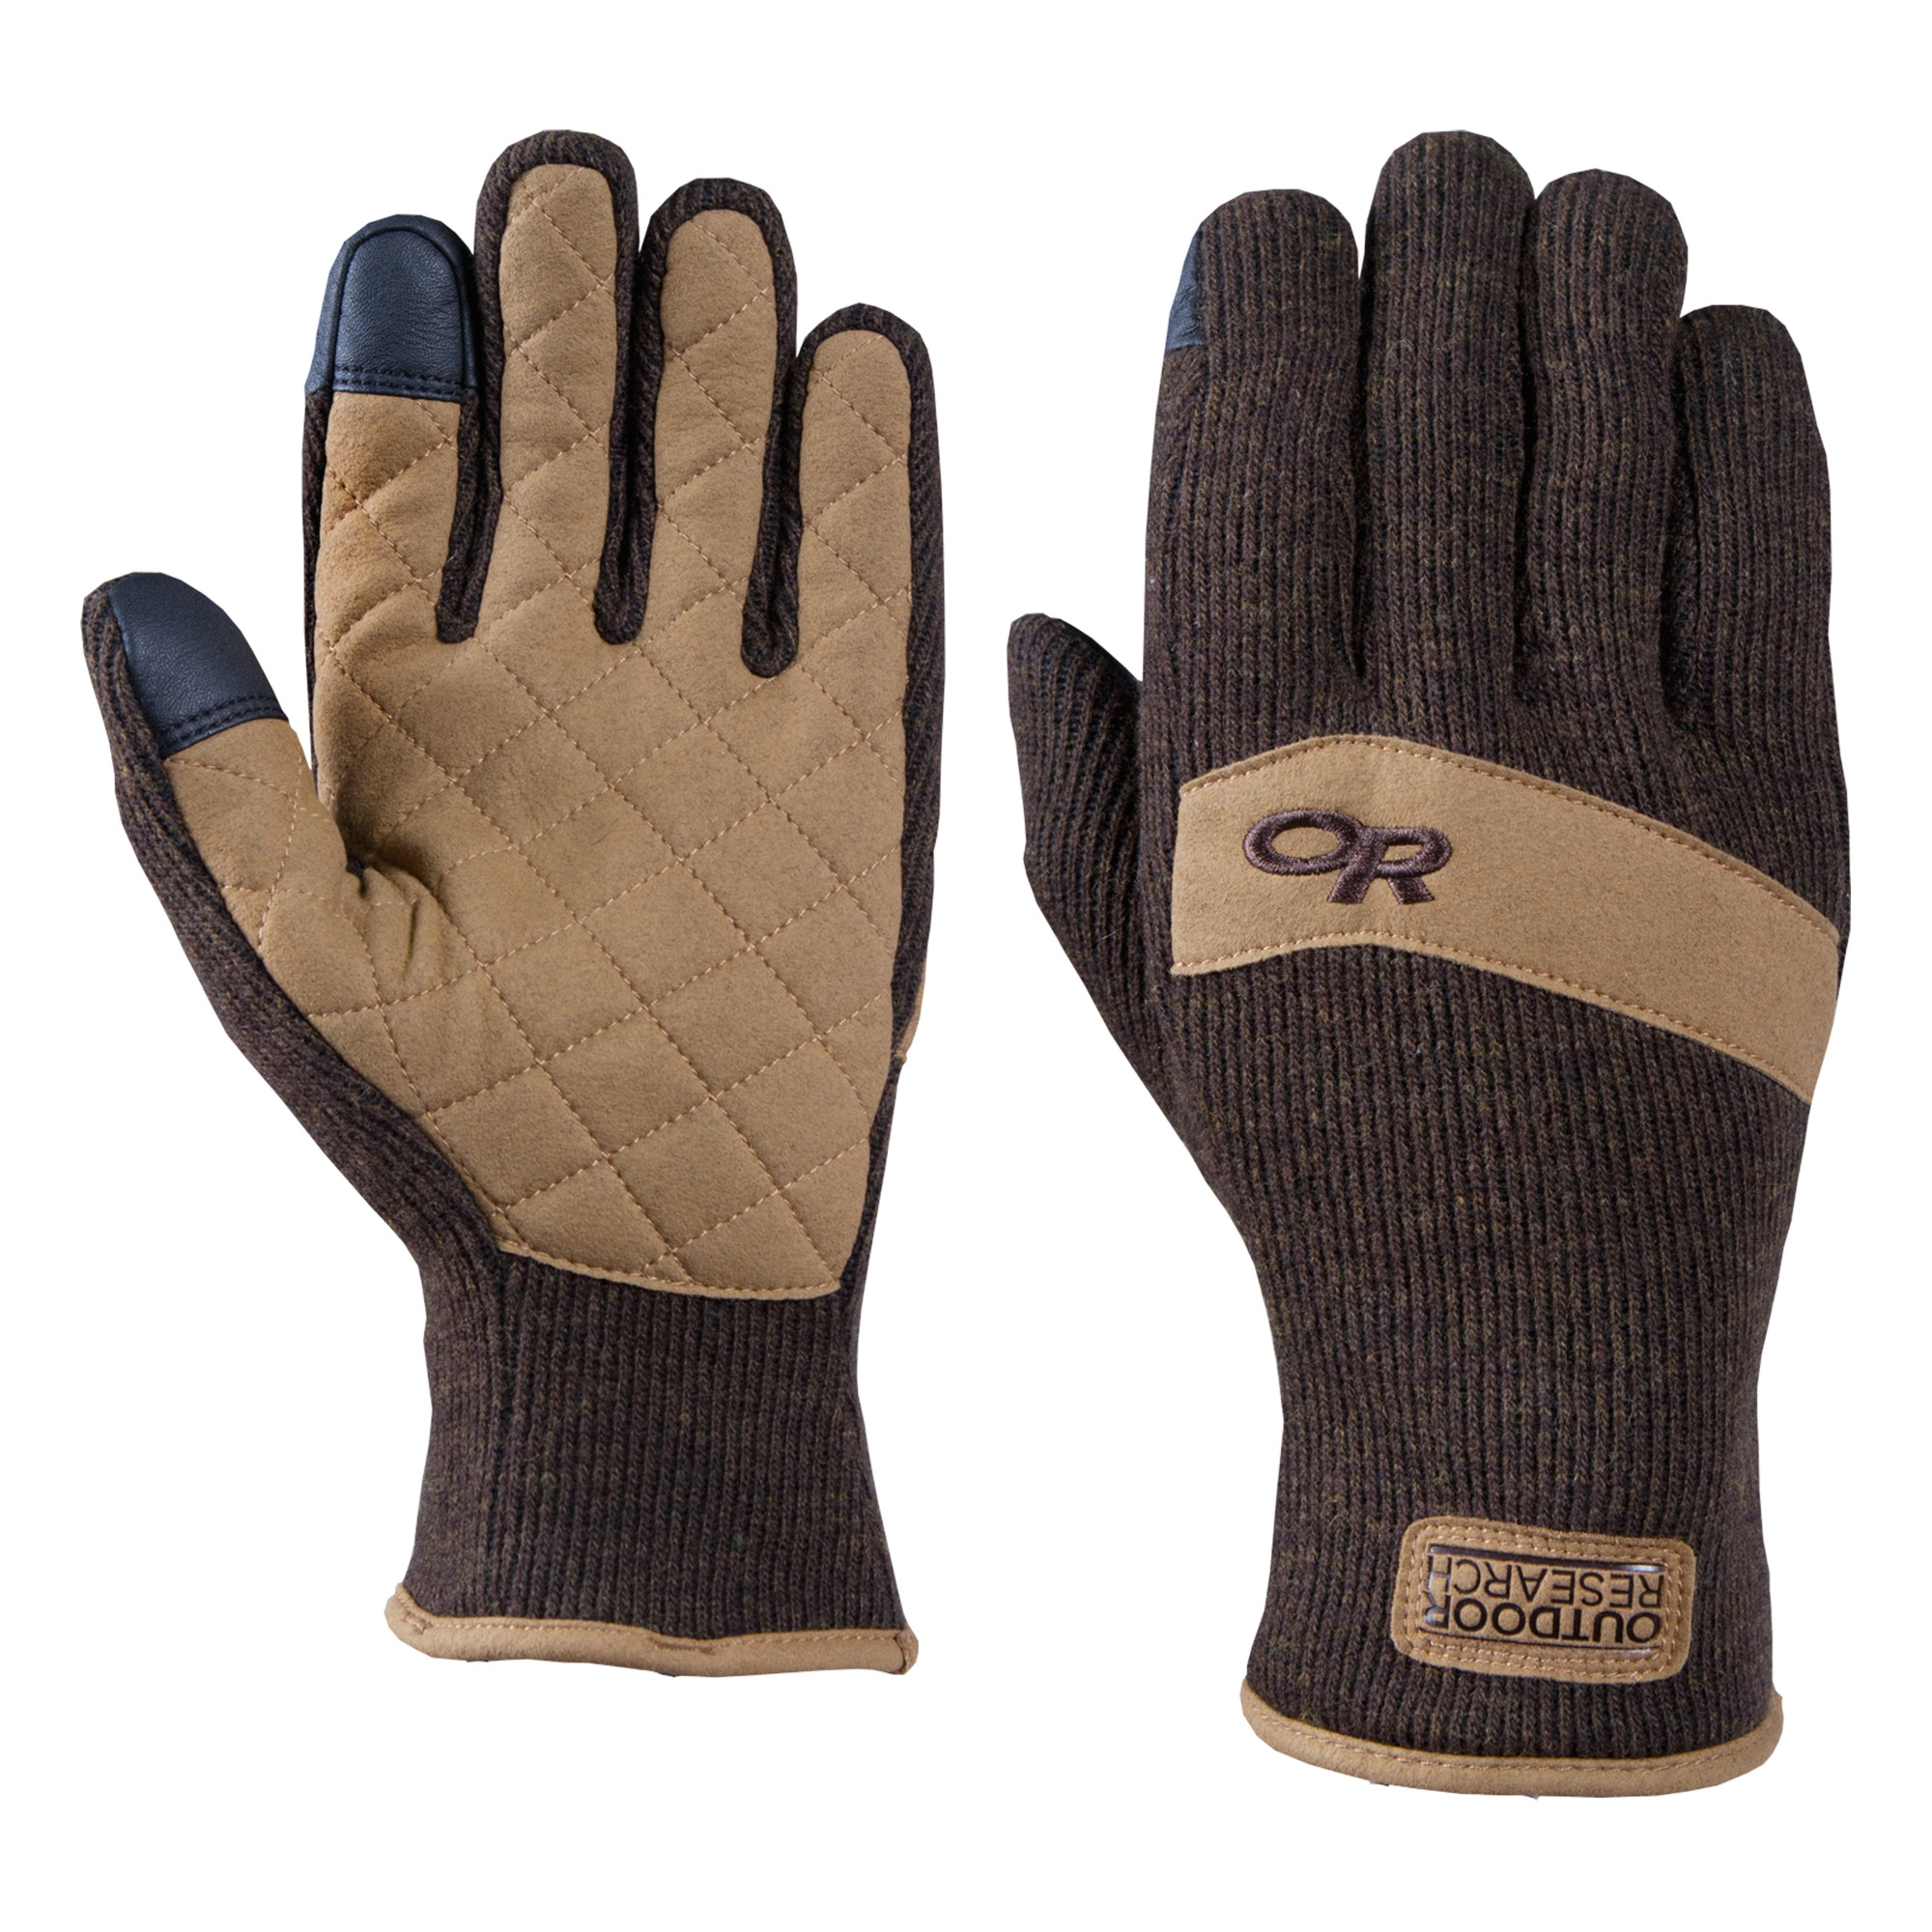 Outdoor Research Exit SensOutdoor Research Gloves-earth-L - Gr. L